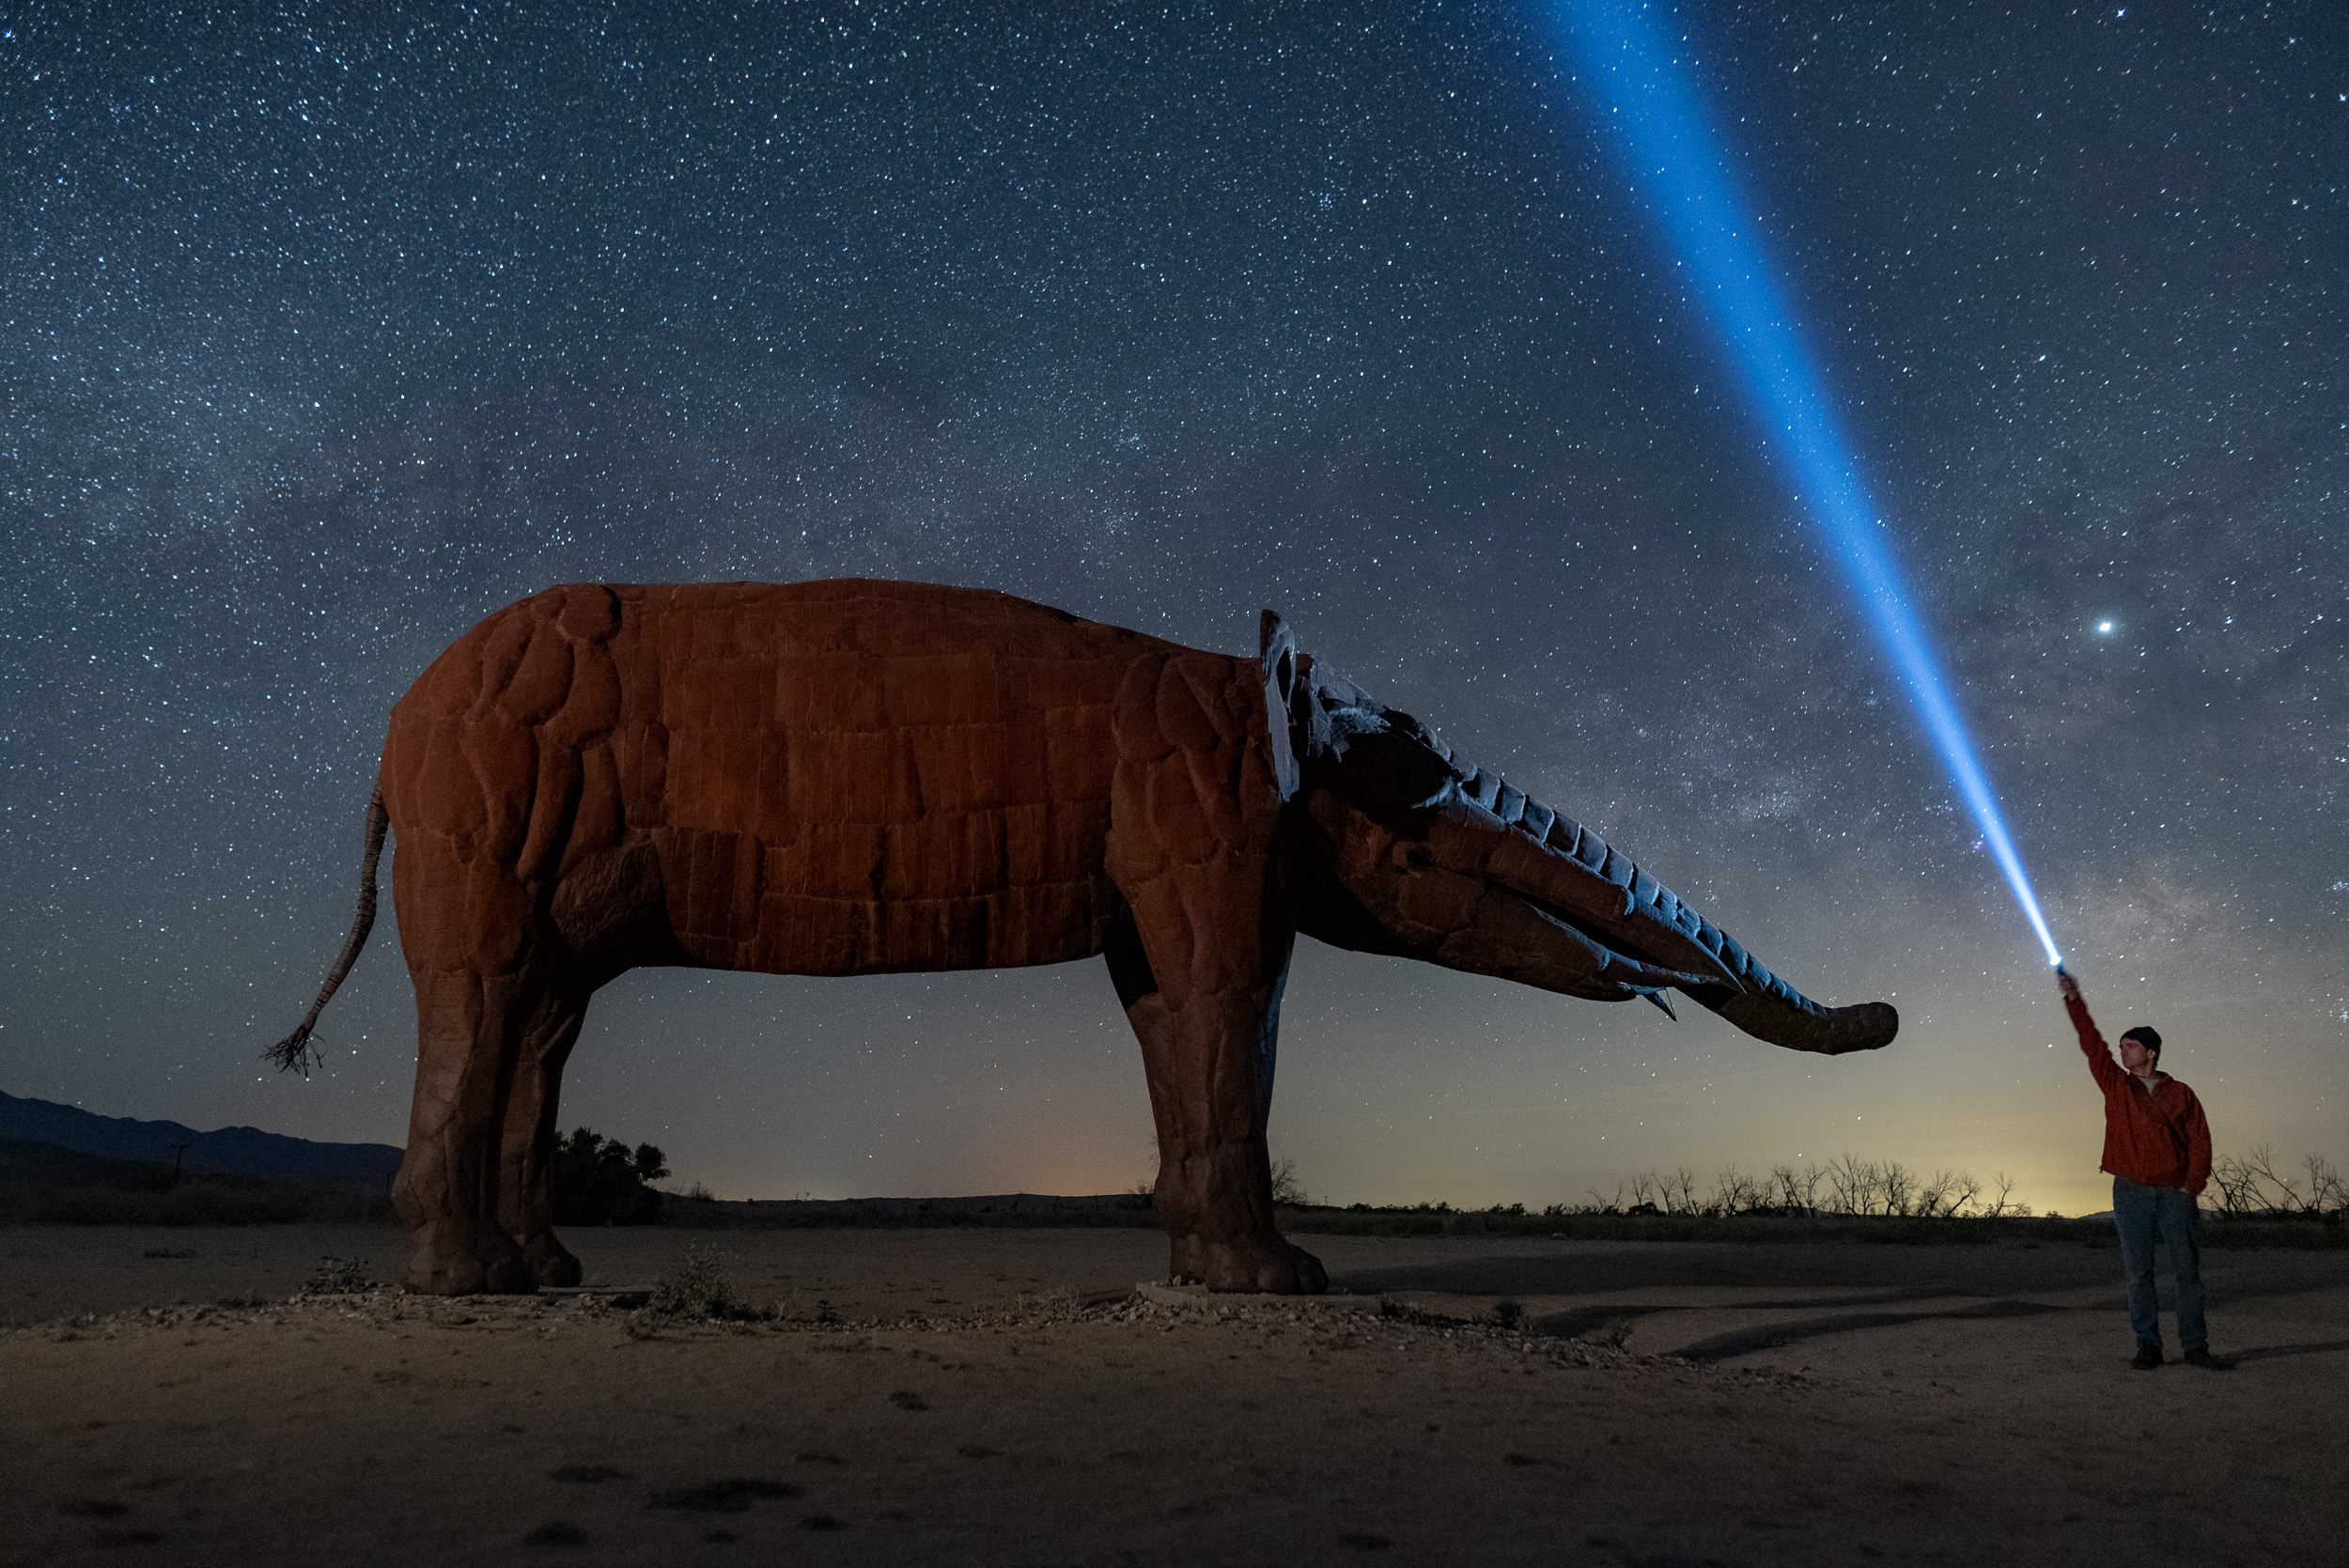 Chris standing beside the gomphotherium, an extinct elephant that once roamed Southern California. Nikon D750 with a  Sigma 24mm f/1.4 Art  lens, light painted with a Coast HP7R. 13 seconds, f/2.2, ISO 6400.